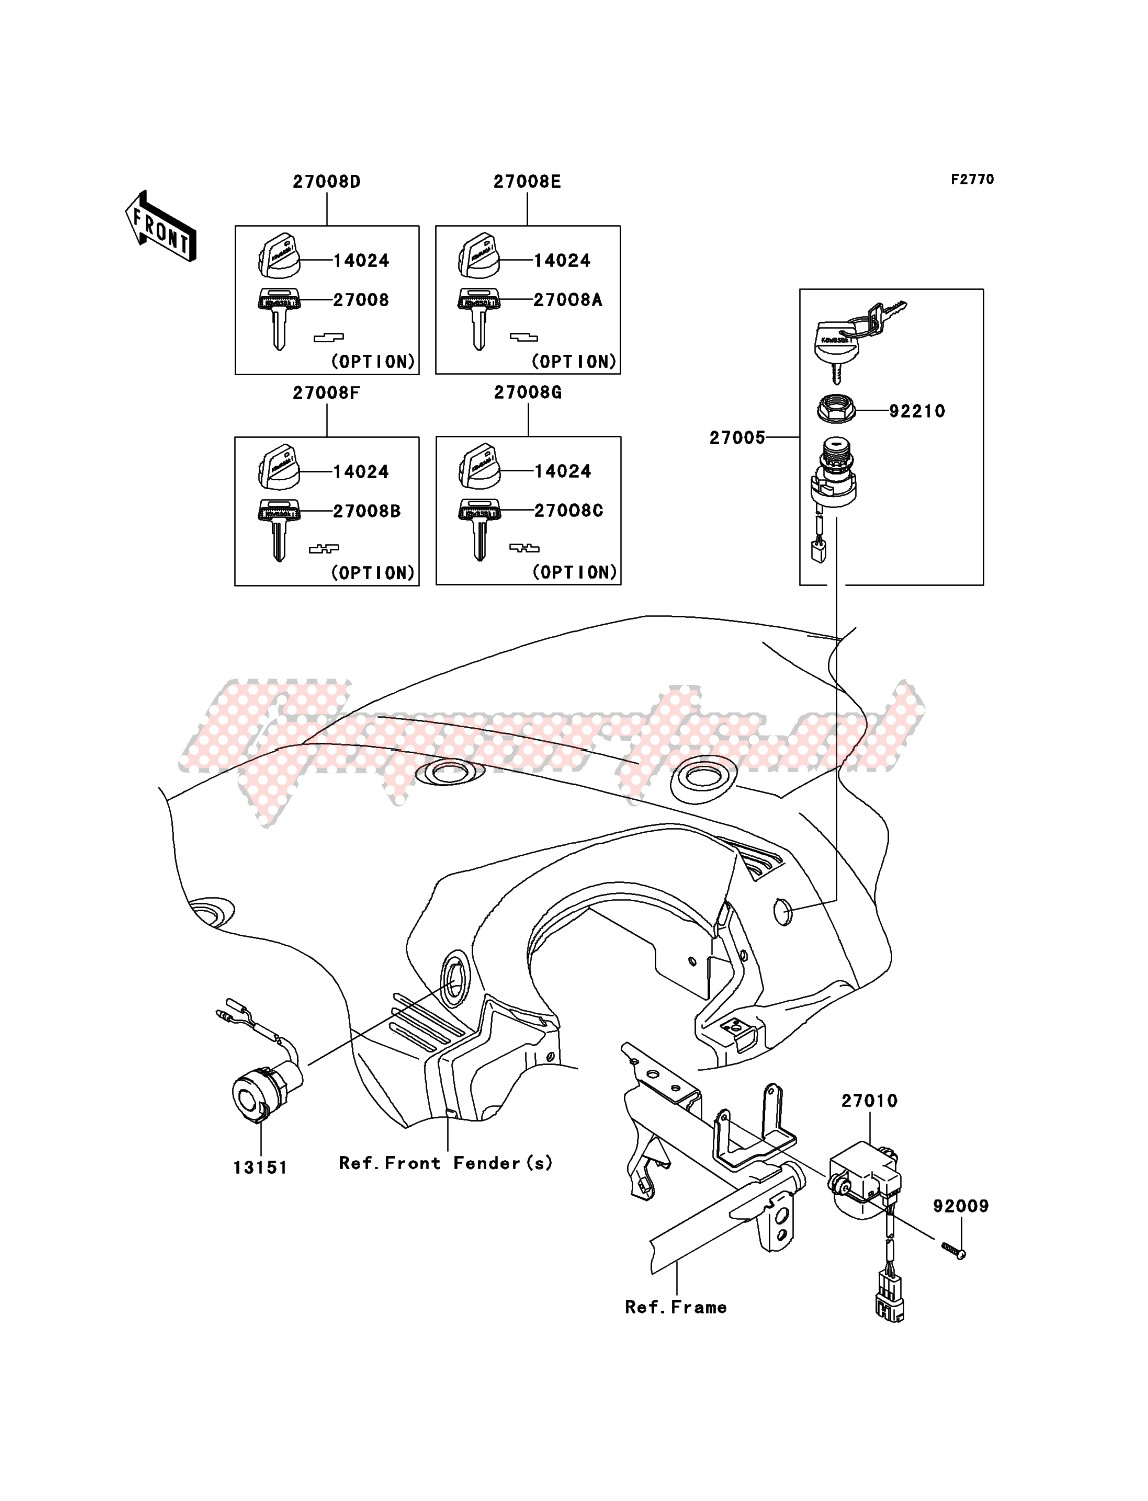 Ignition Switch image